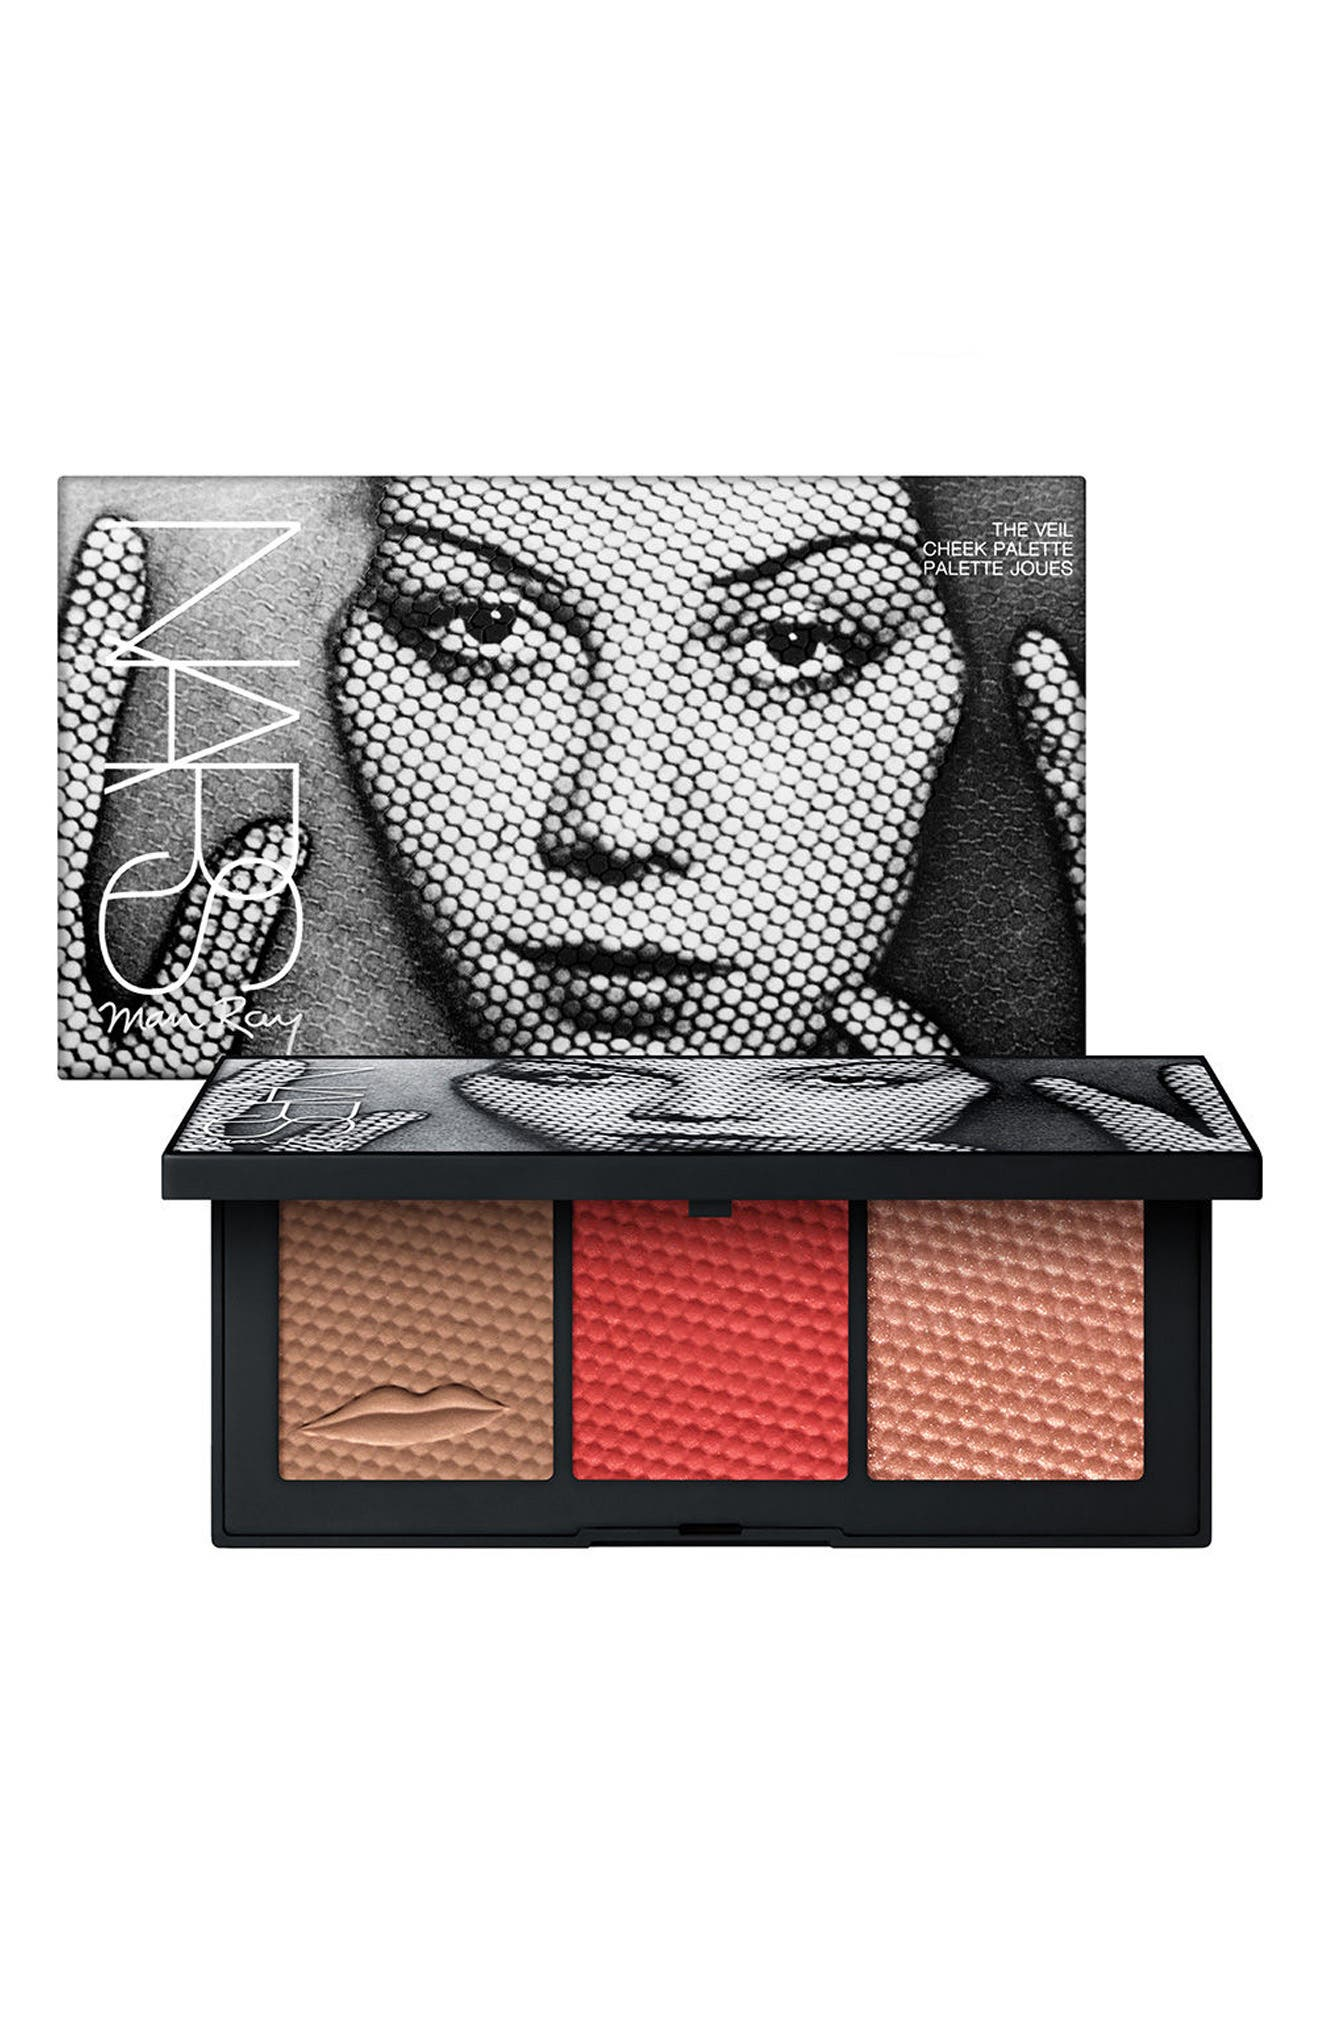 Alternate Image 1 Selected - NARS Man Ray The Veil Cheek Palette ($155.68 Value)